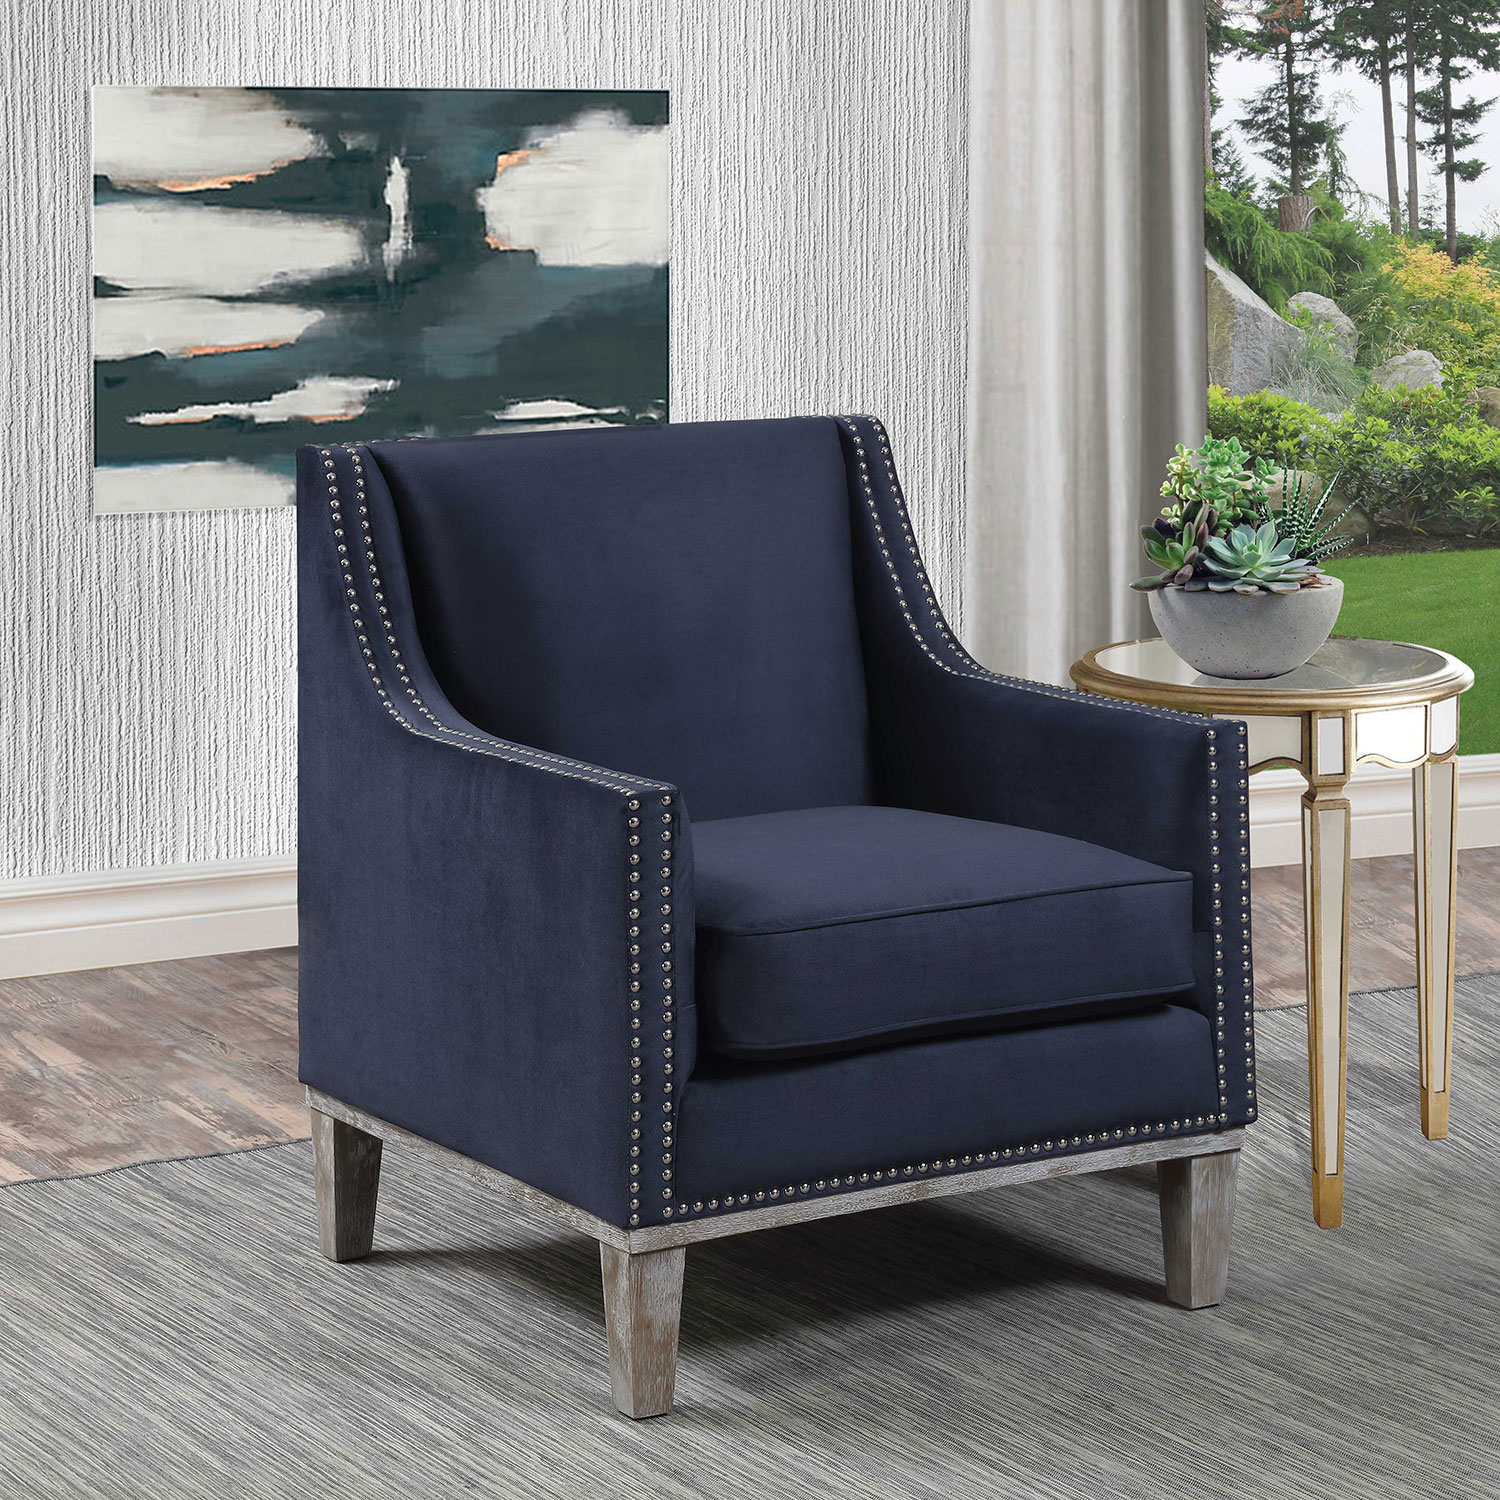 Cheap Accent Chairs Canada Best Buy Canada Furniture Event Sale Save 320 Off Accent